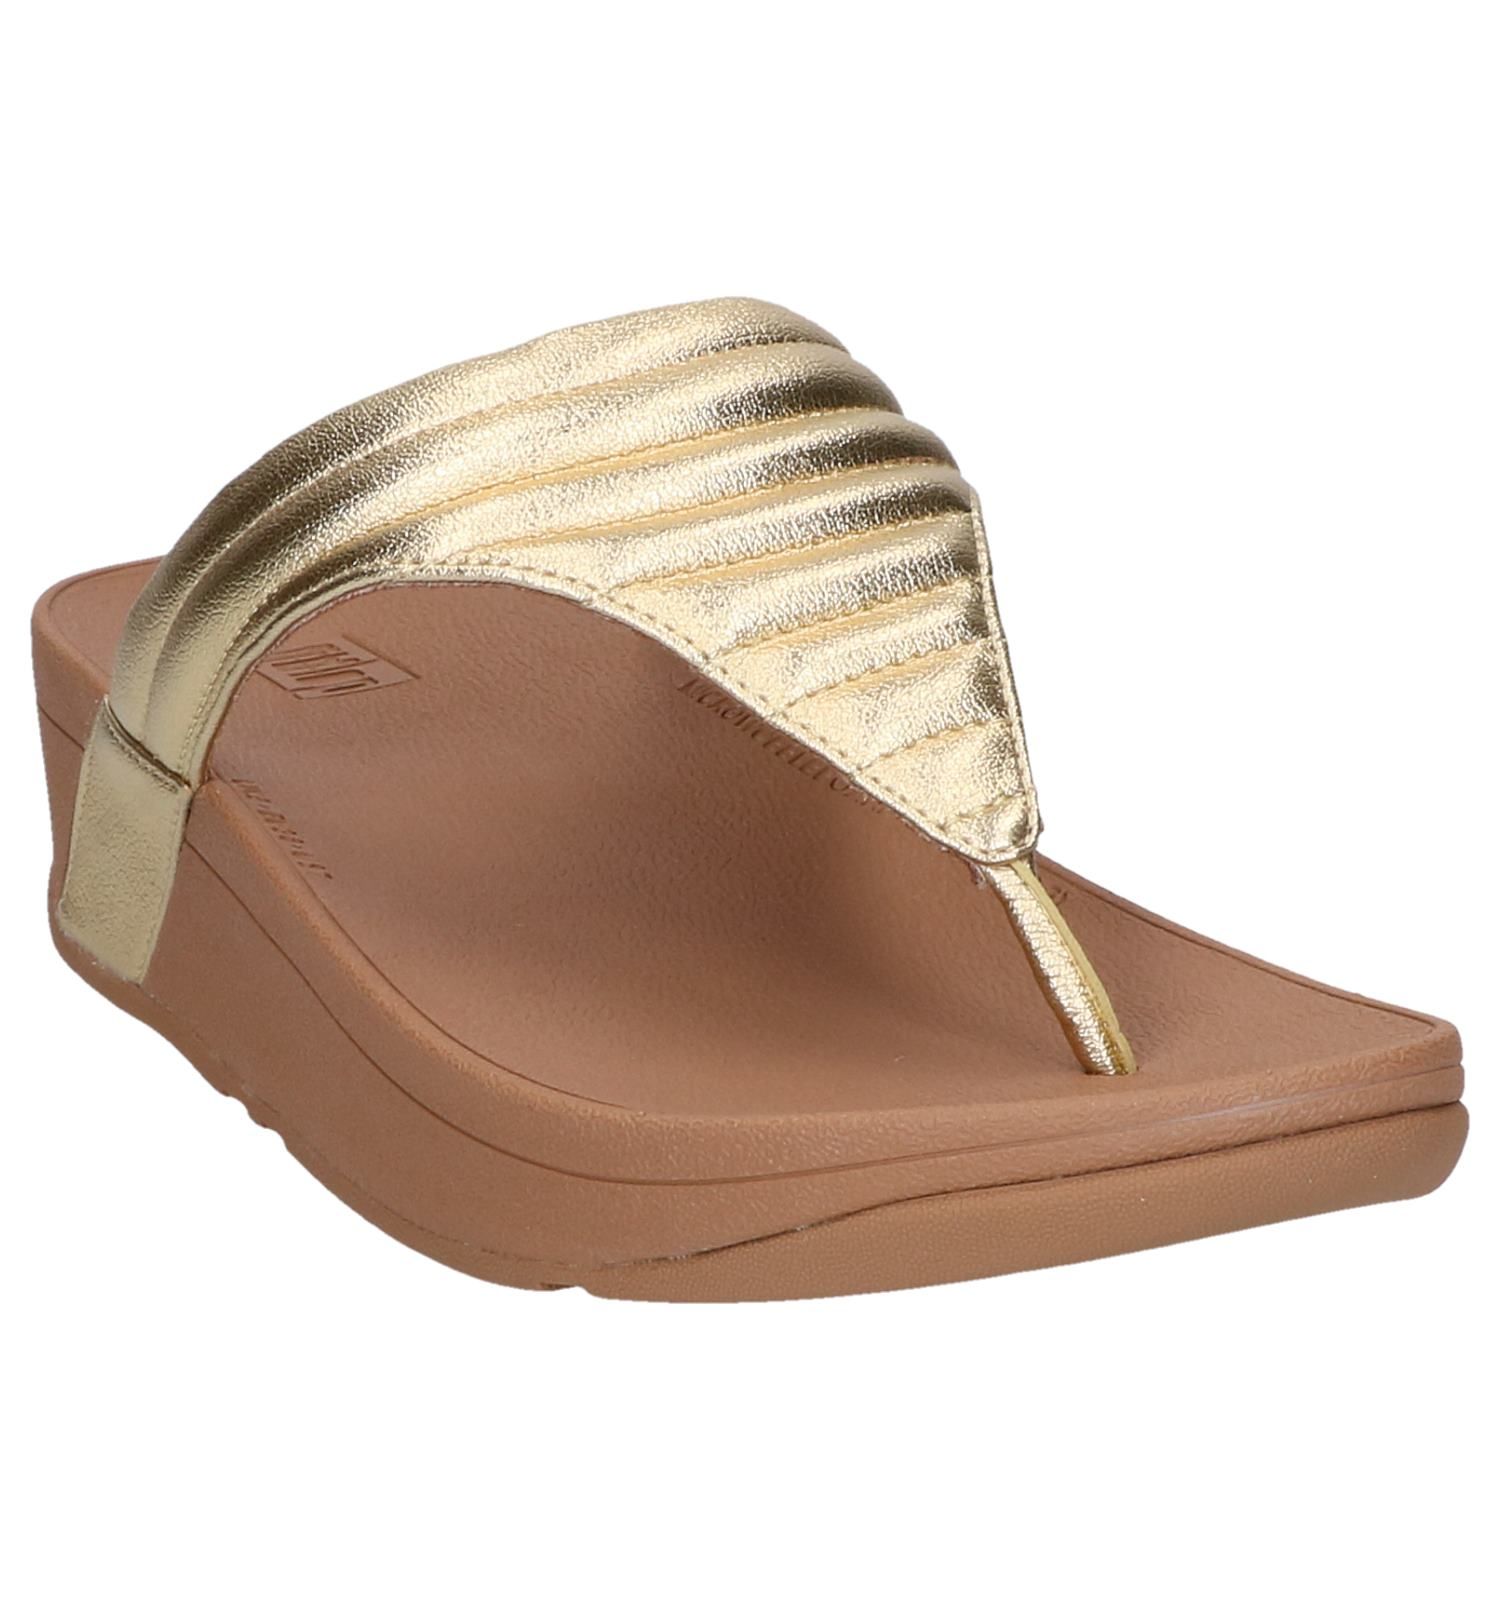 Slippers Slippers Gouden Gouden Lottie Gouden Padded Fitflop Fitflop Lottie Fitflop Lottie Slippers Padded Yb76yvfg